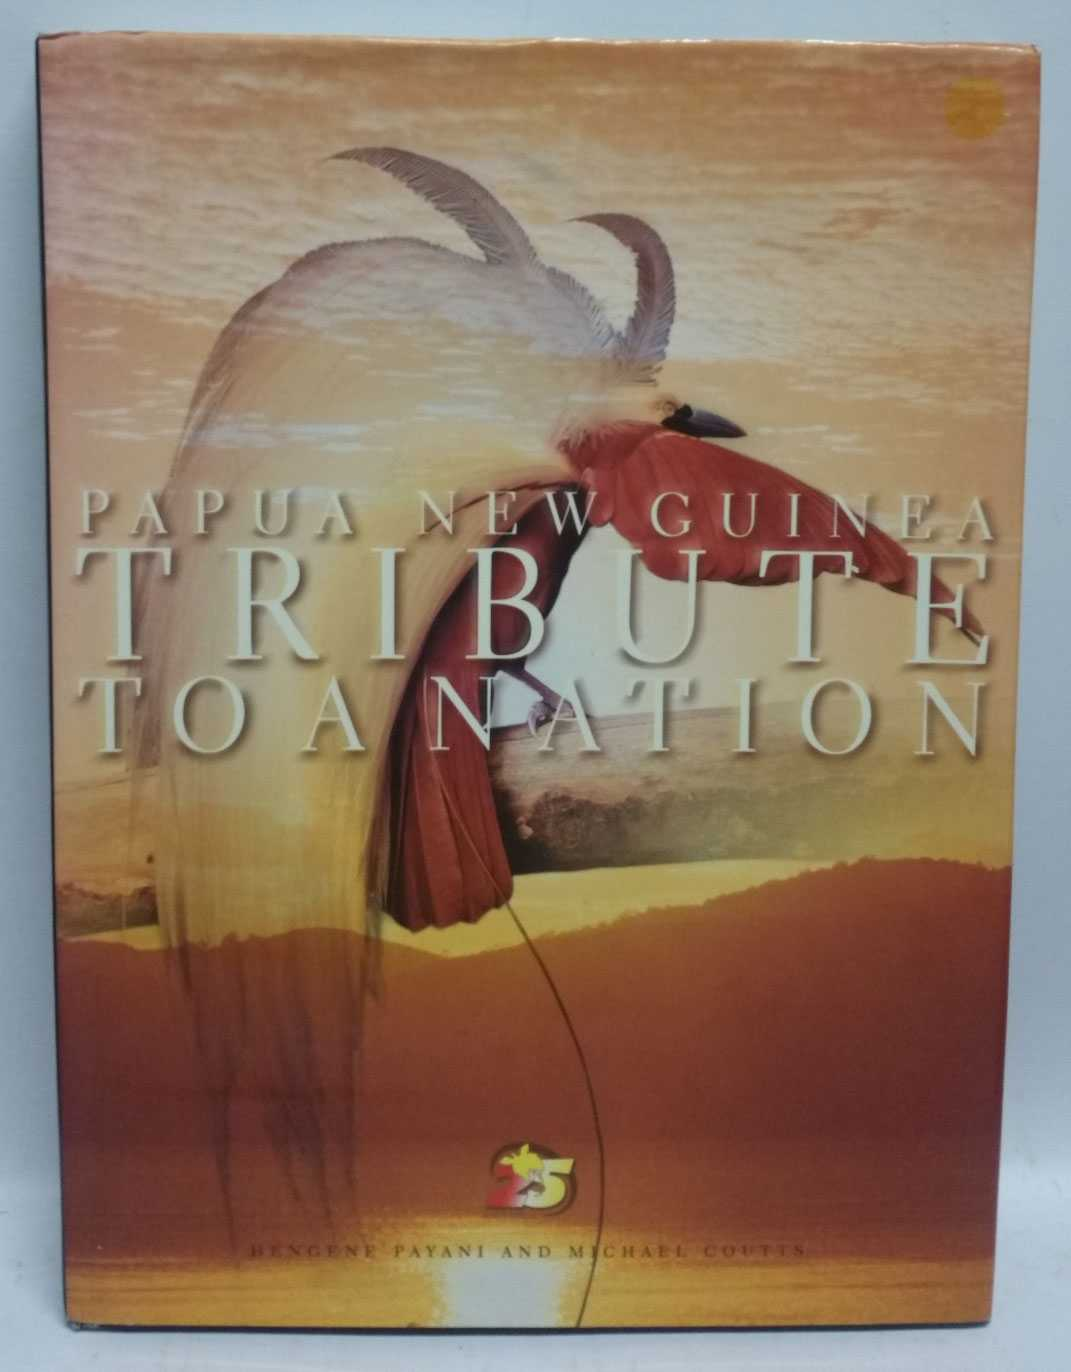 Papua New Guinea: Tribute To A Nation, Hengene Payani; Michael Coutts